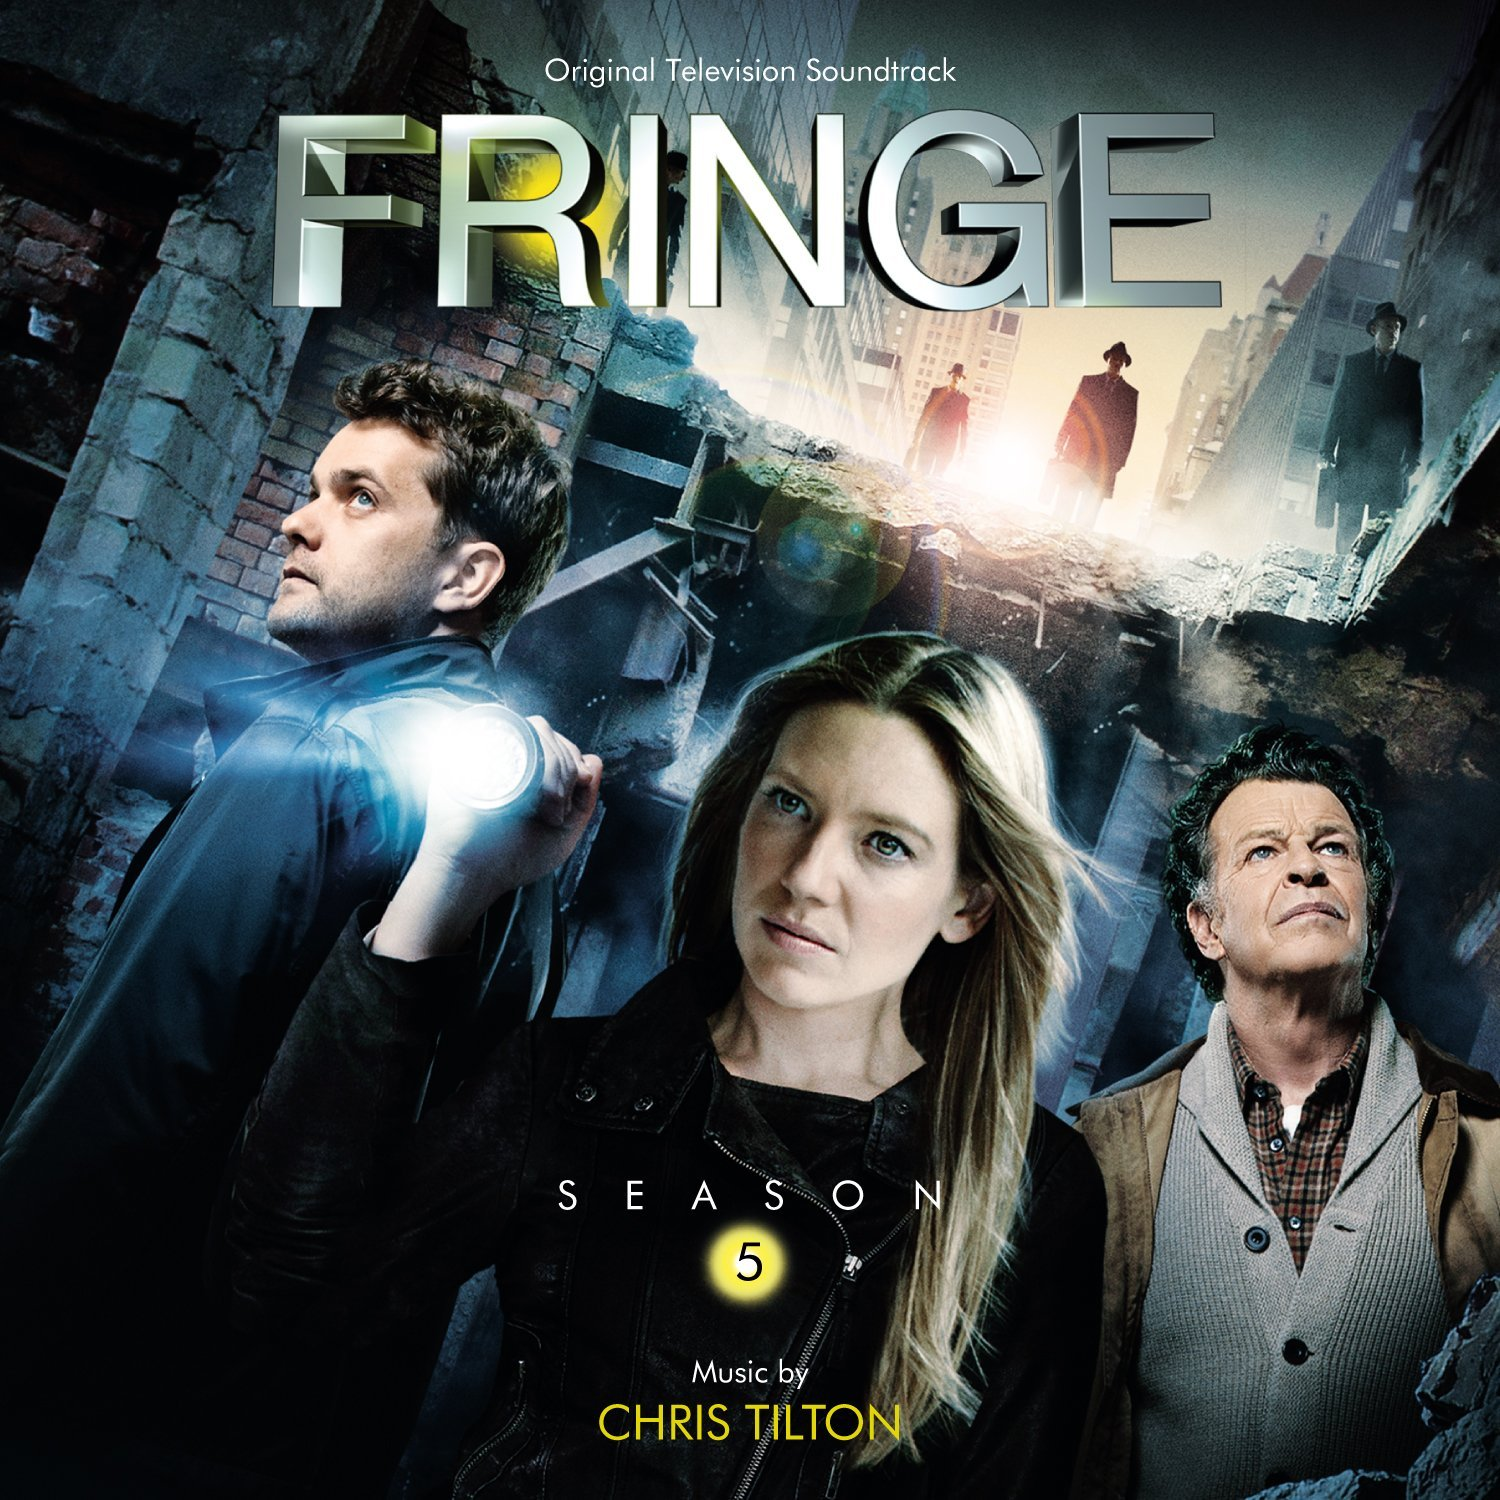 fox fringe soundtrack season 5814rXmvRQNL_SL1500_jpg k1iQVhPu